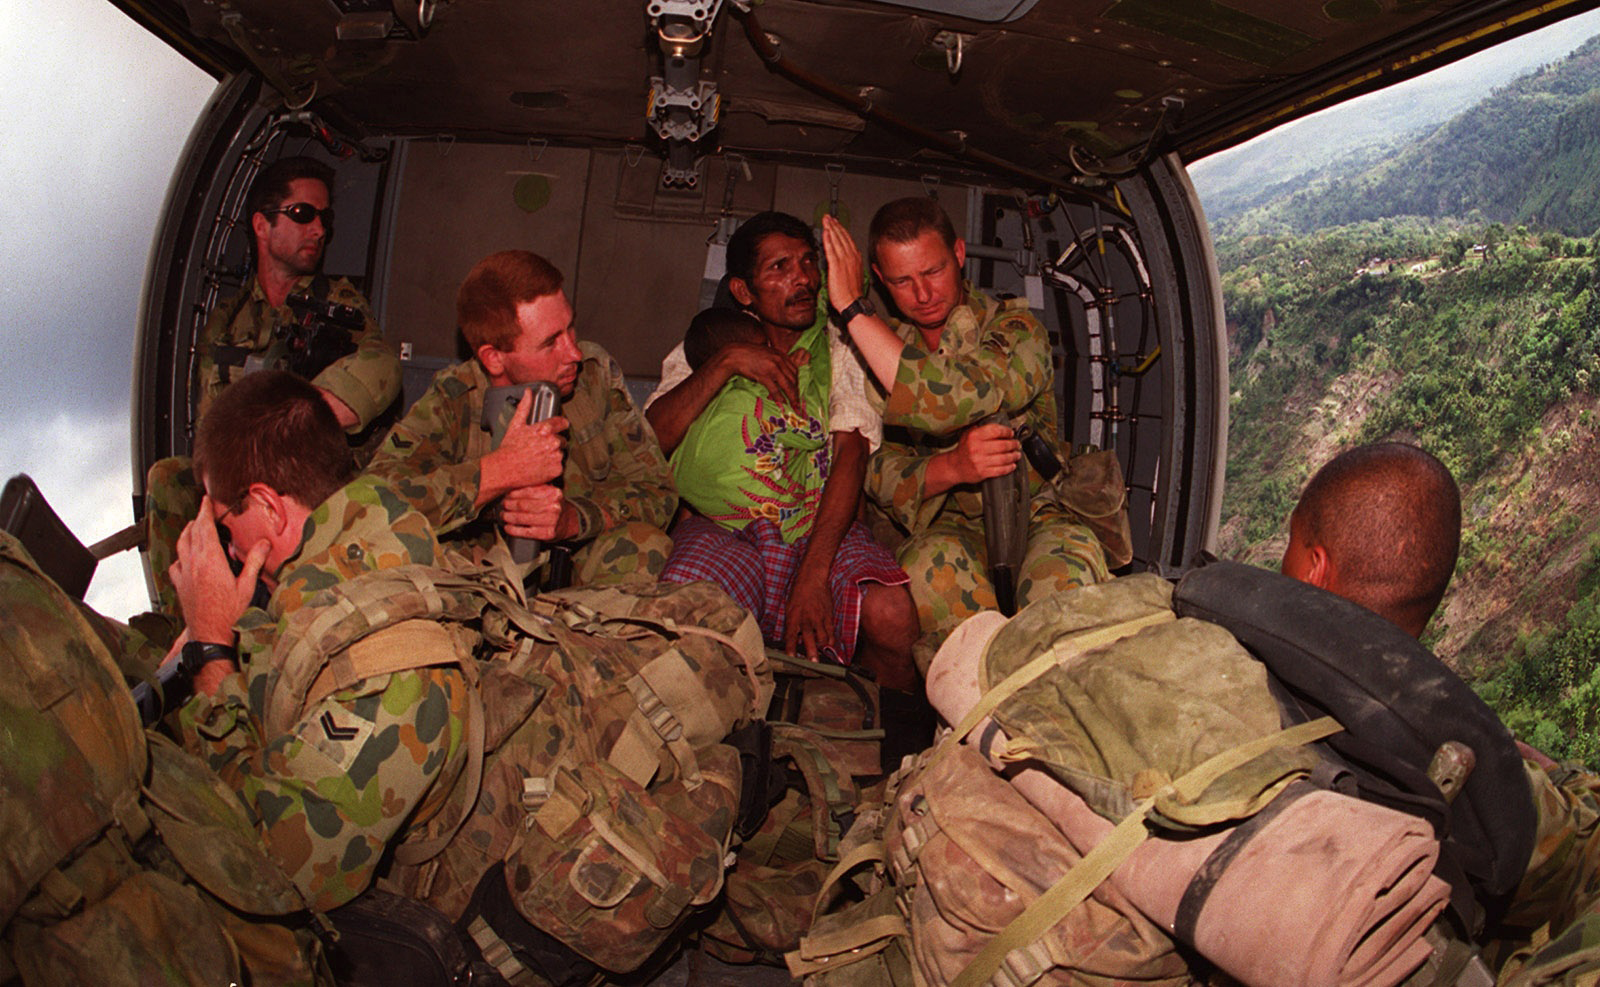 An INTERFET patrol extracted from the mountainous East Timor border region transports an extra passenger to the care of the INTERFET field hospital in Dili.  An INTERFET soldier shields the childs father from the wind as he cradles his young baby, suspected to be suffering from malaria.